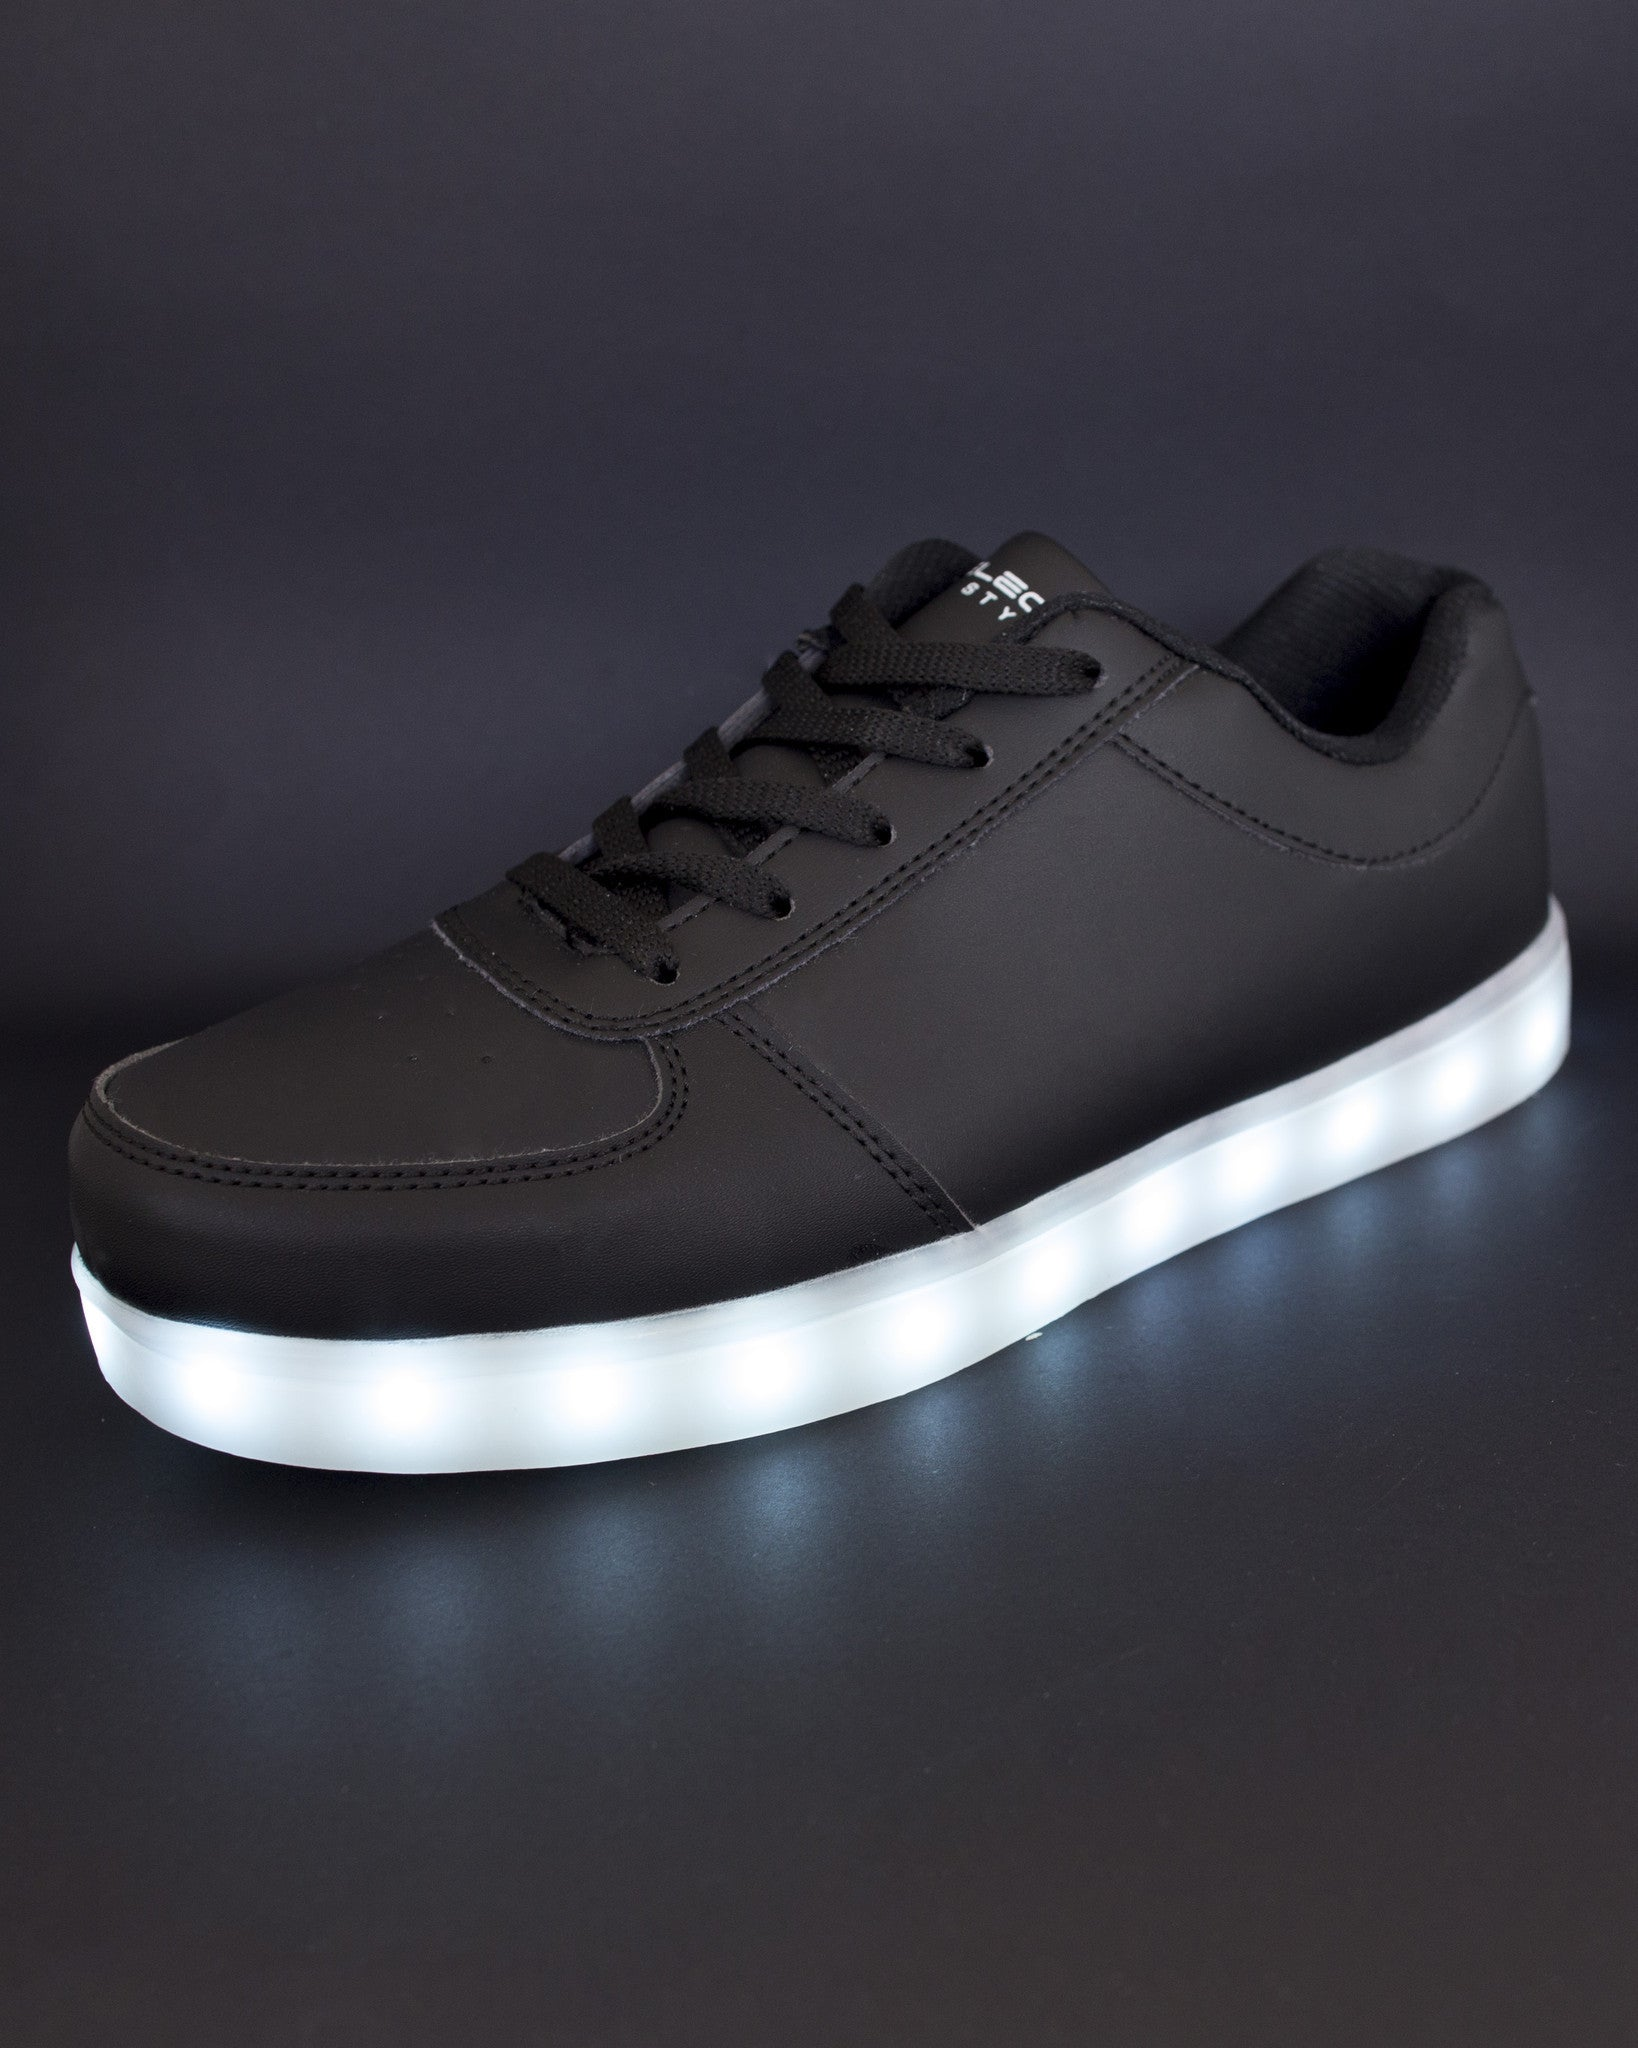 Light Up Shoes - All Black - Electric Styles | World's Number 1 Light Up Shoe Store - {product_type}} -  - 9